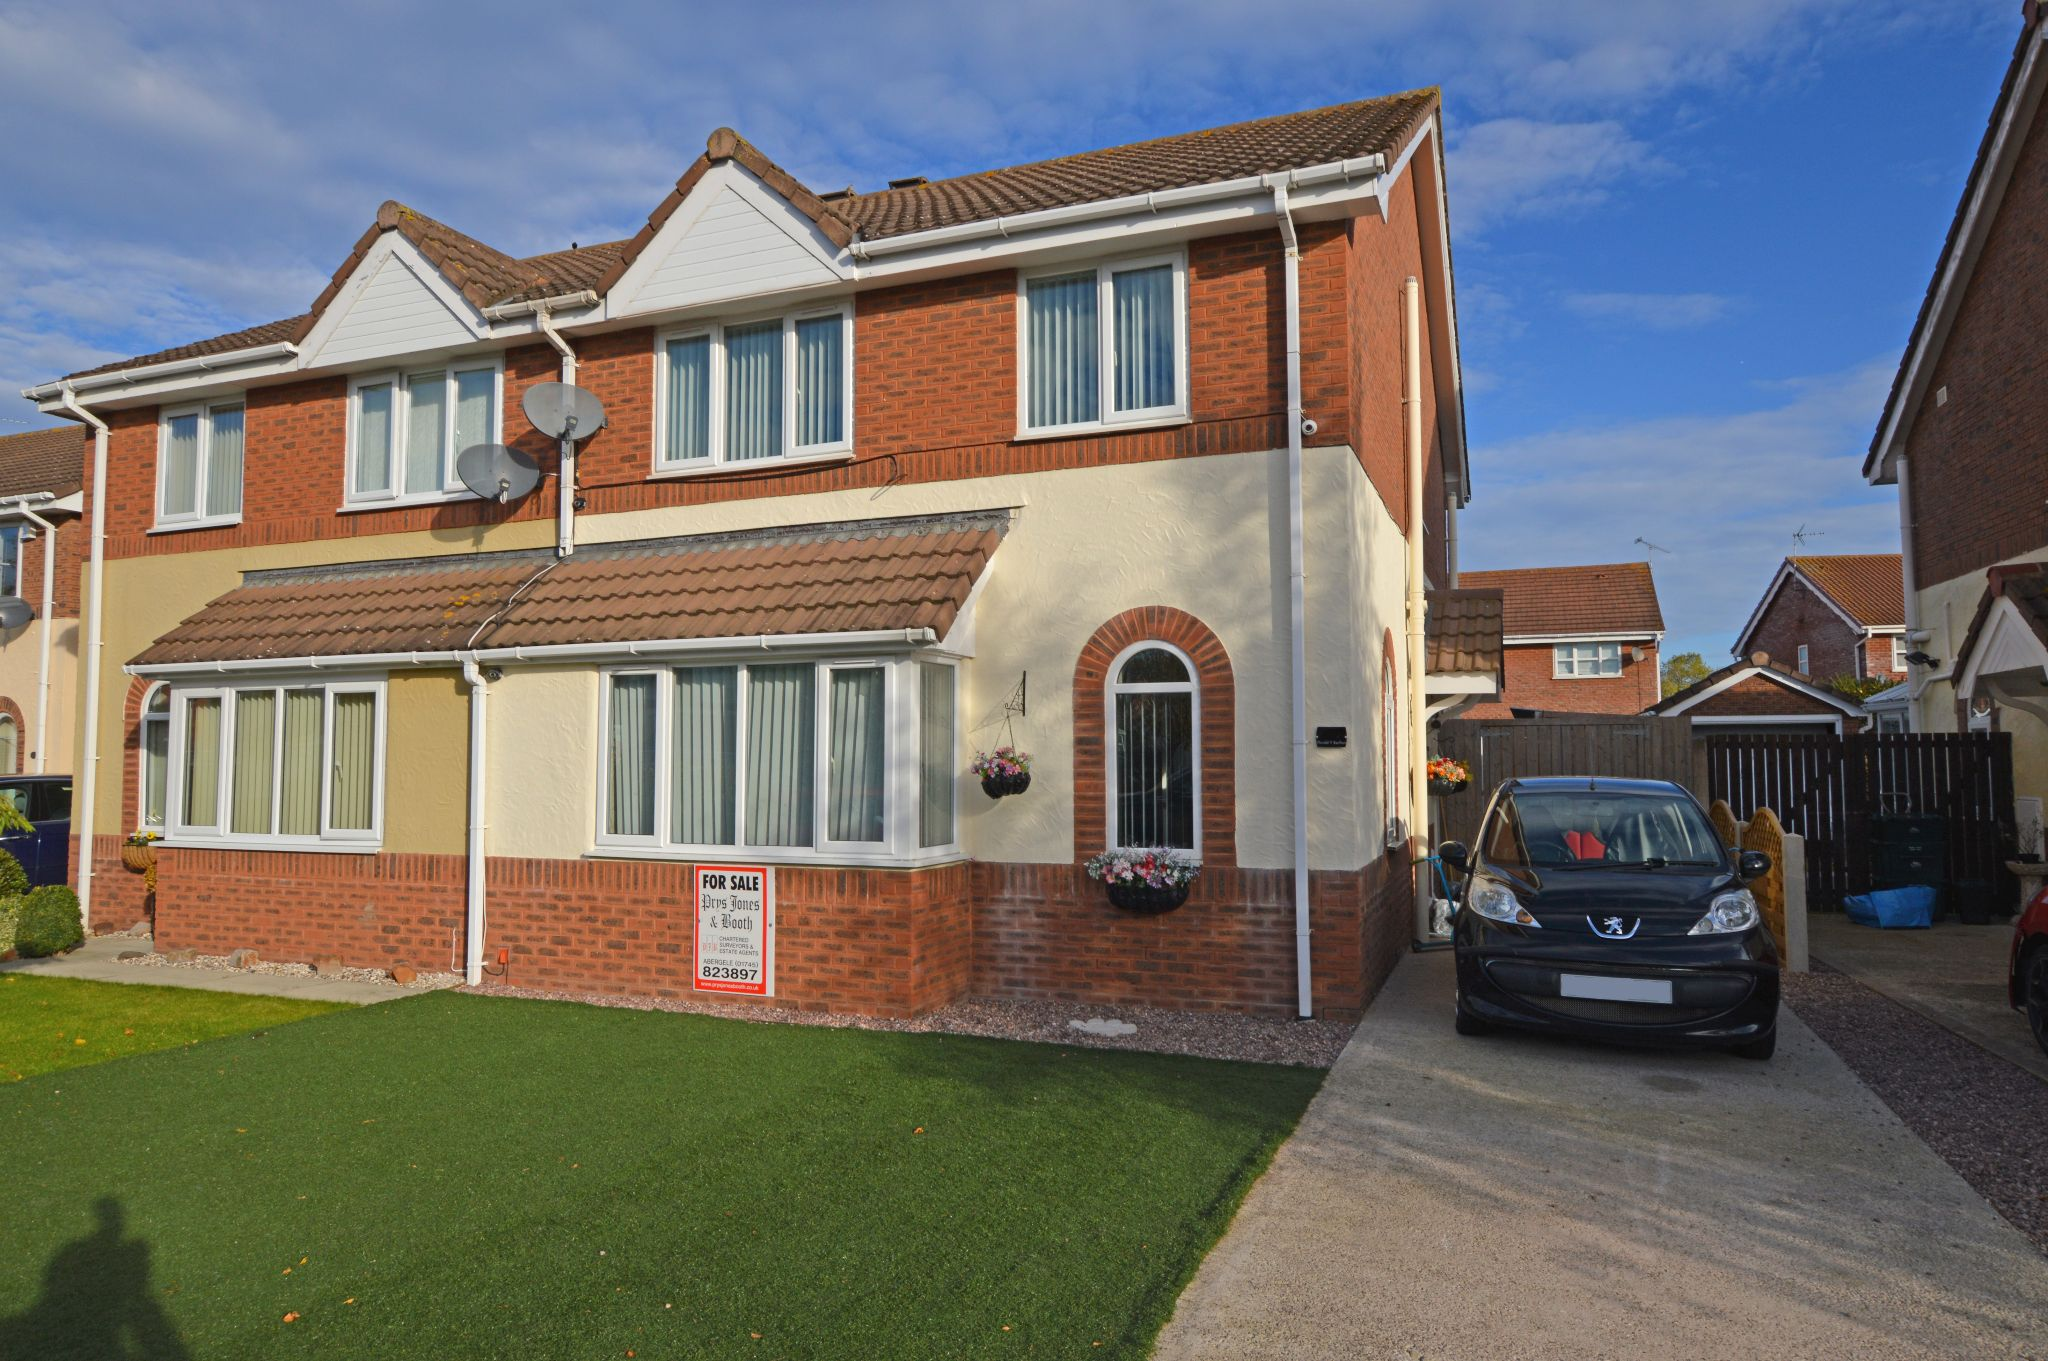 3 bedroom semi-detached house For Sale in Abergele - Front Aspect